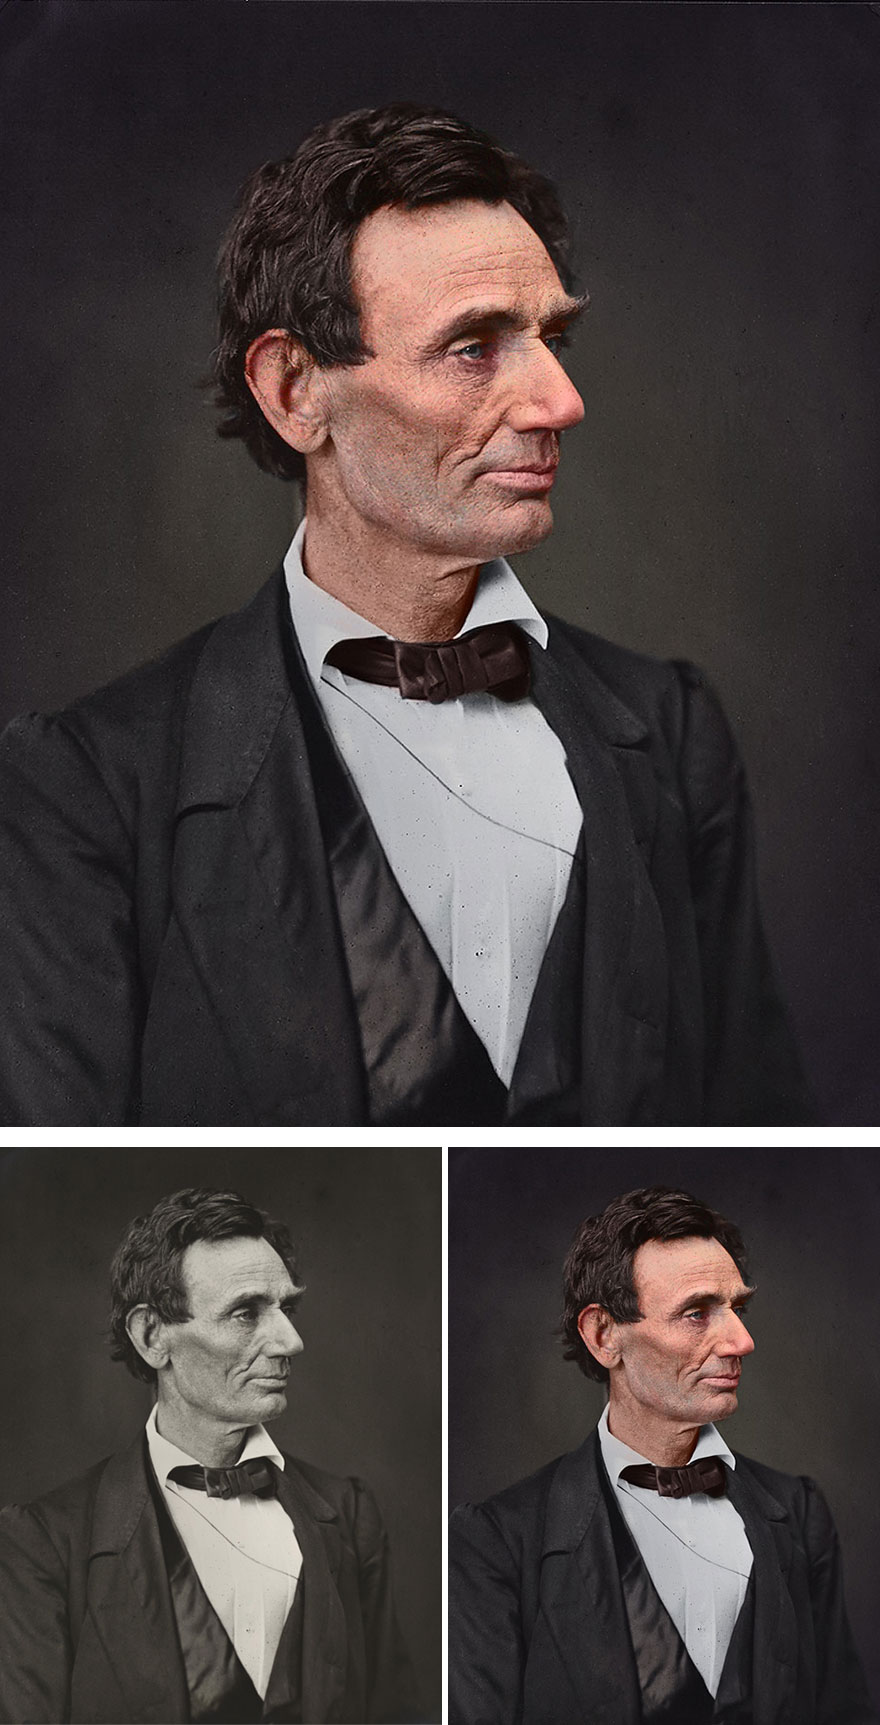 colorized-black-and-white-5